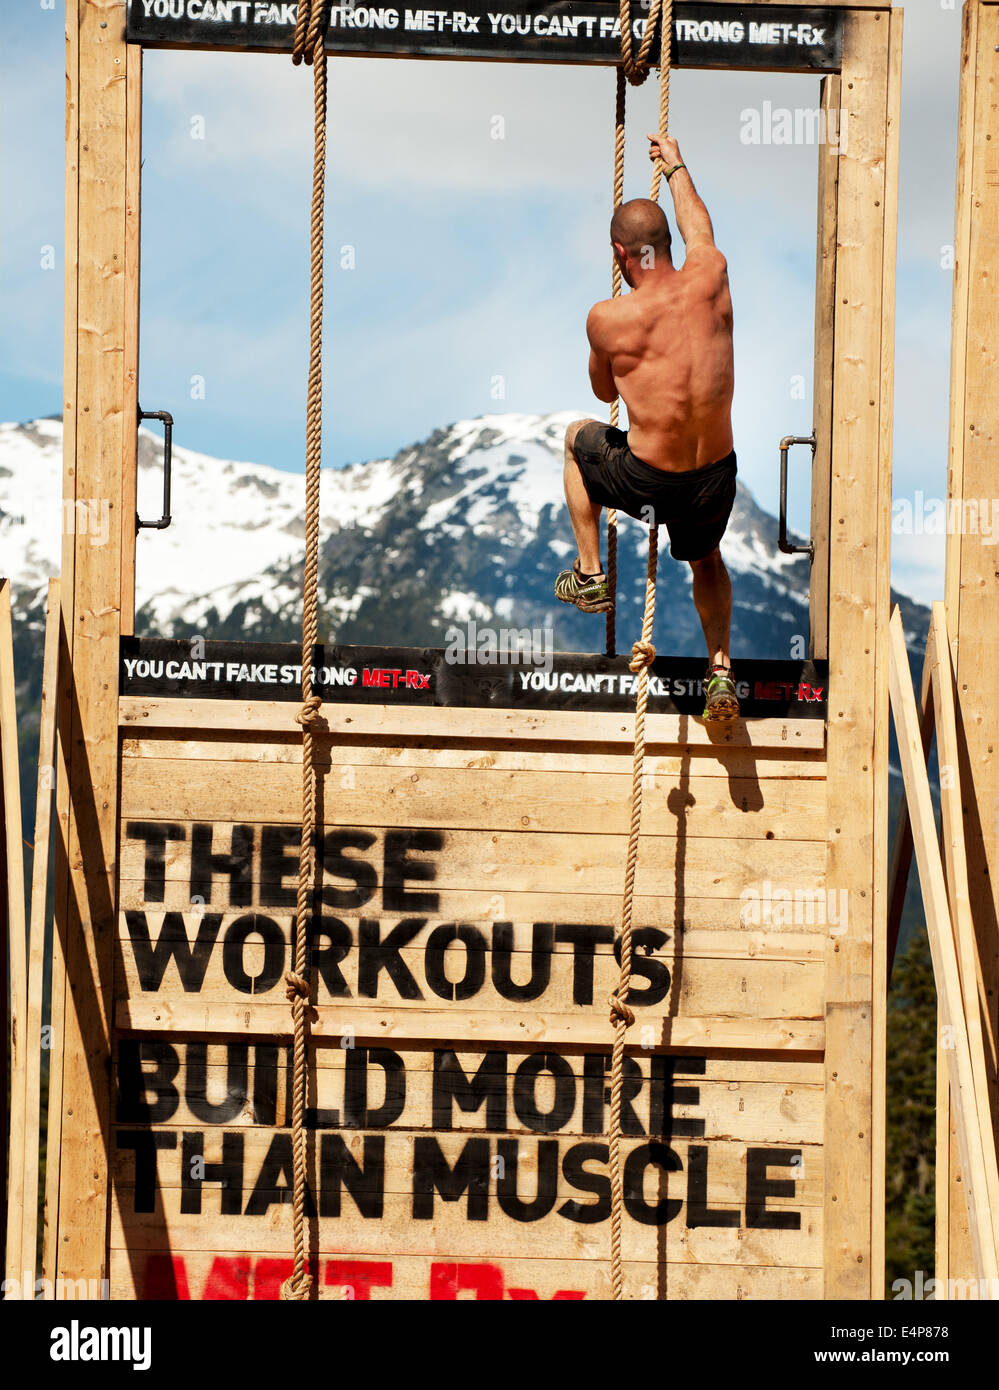 A man climbs a wall at the Whistler Vancouver Tough Mudder event. - Stock Image